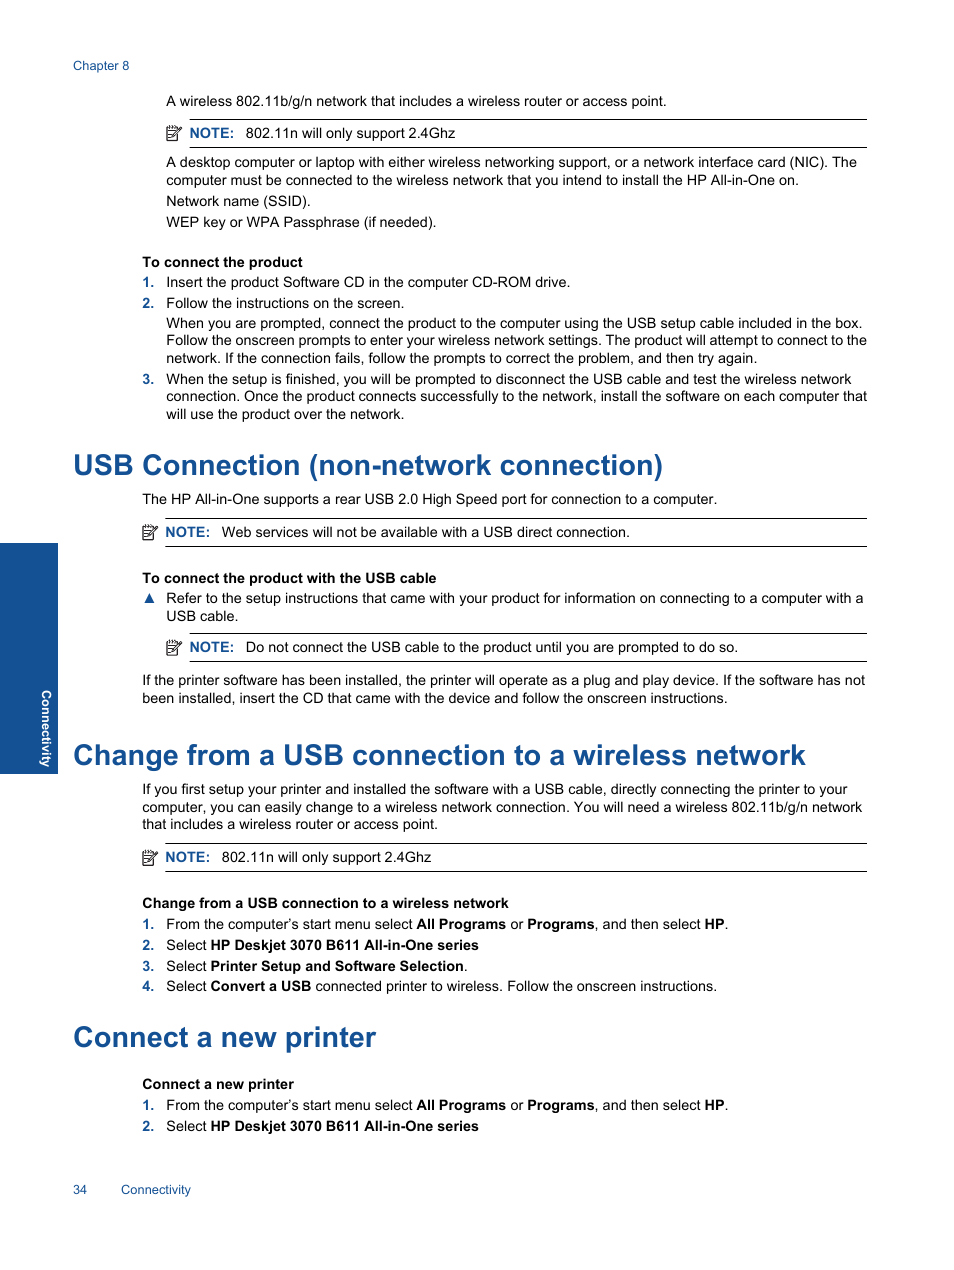 Usb connection (non-network connection), Change from a usb